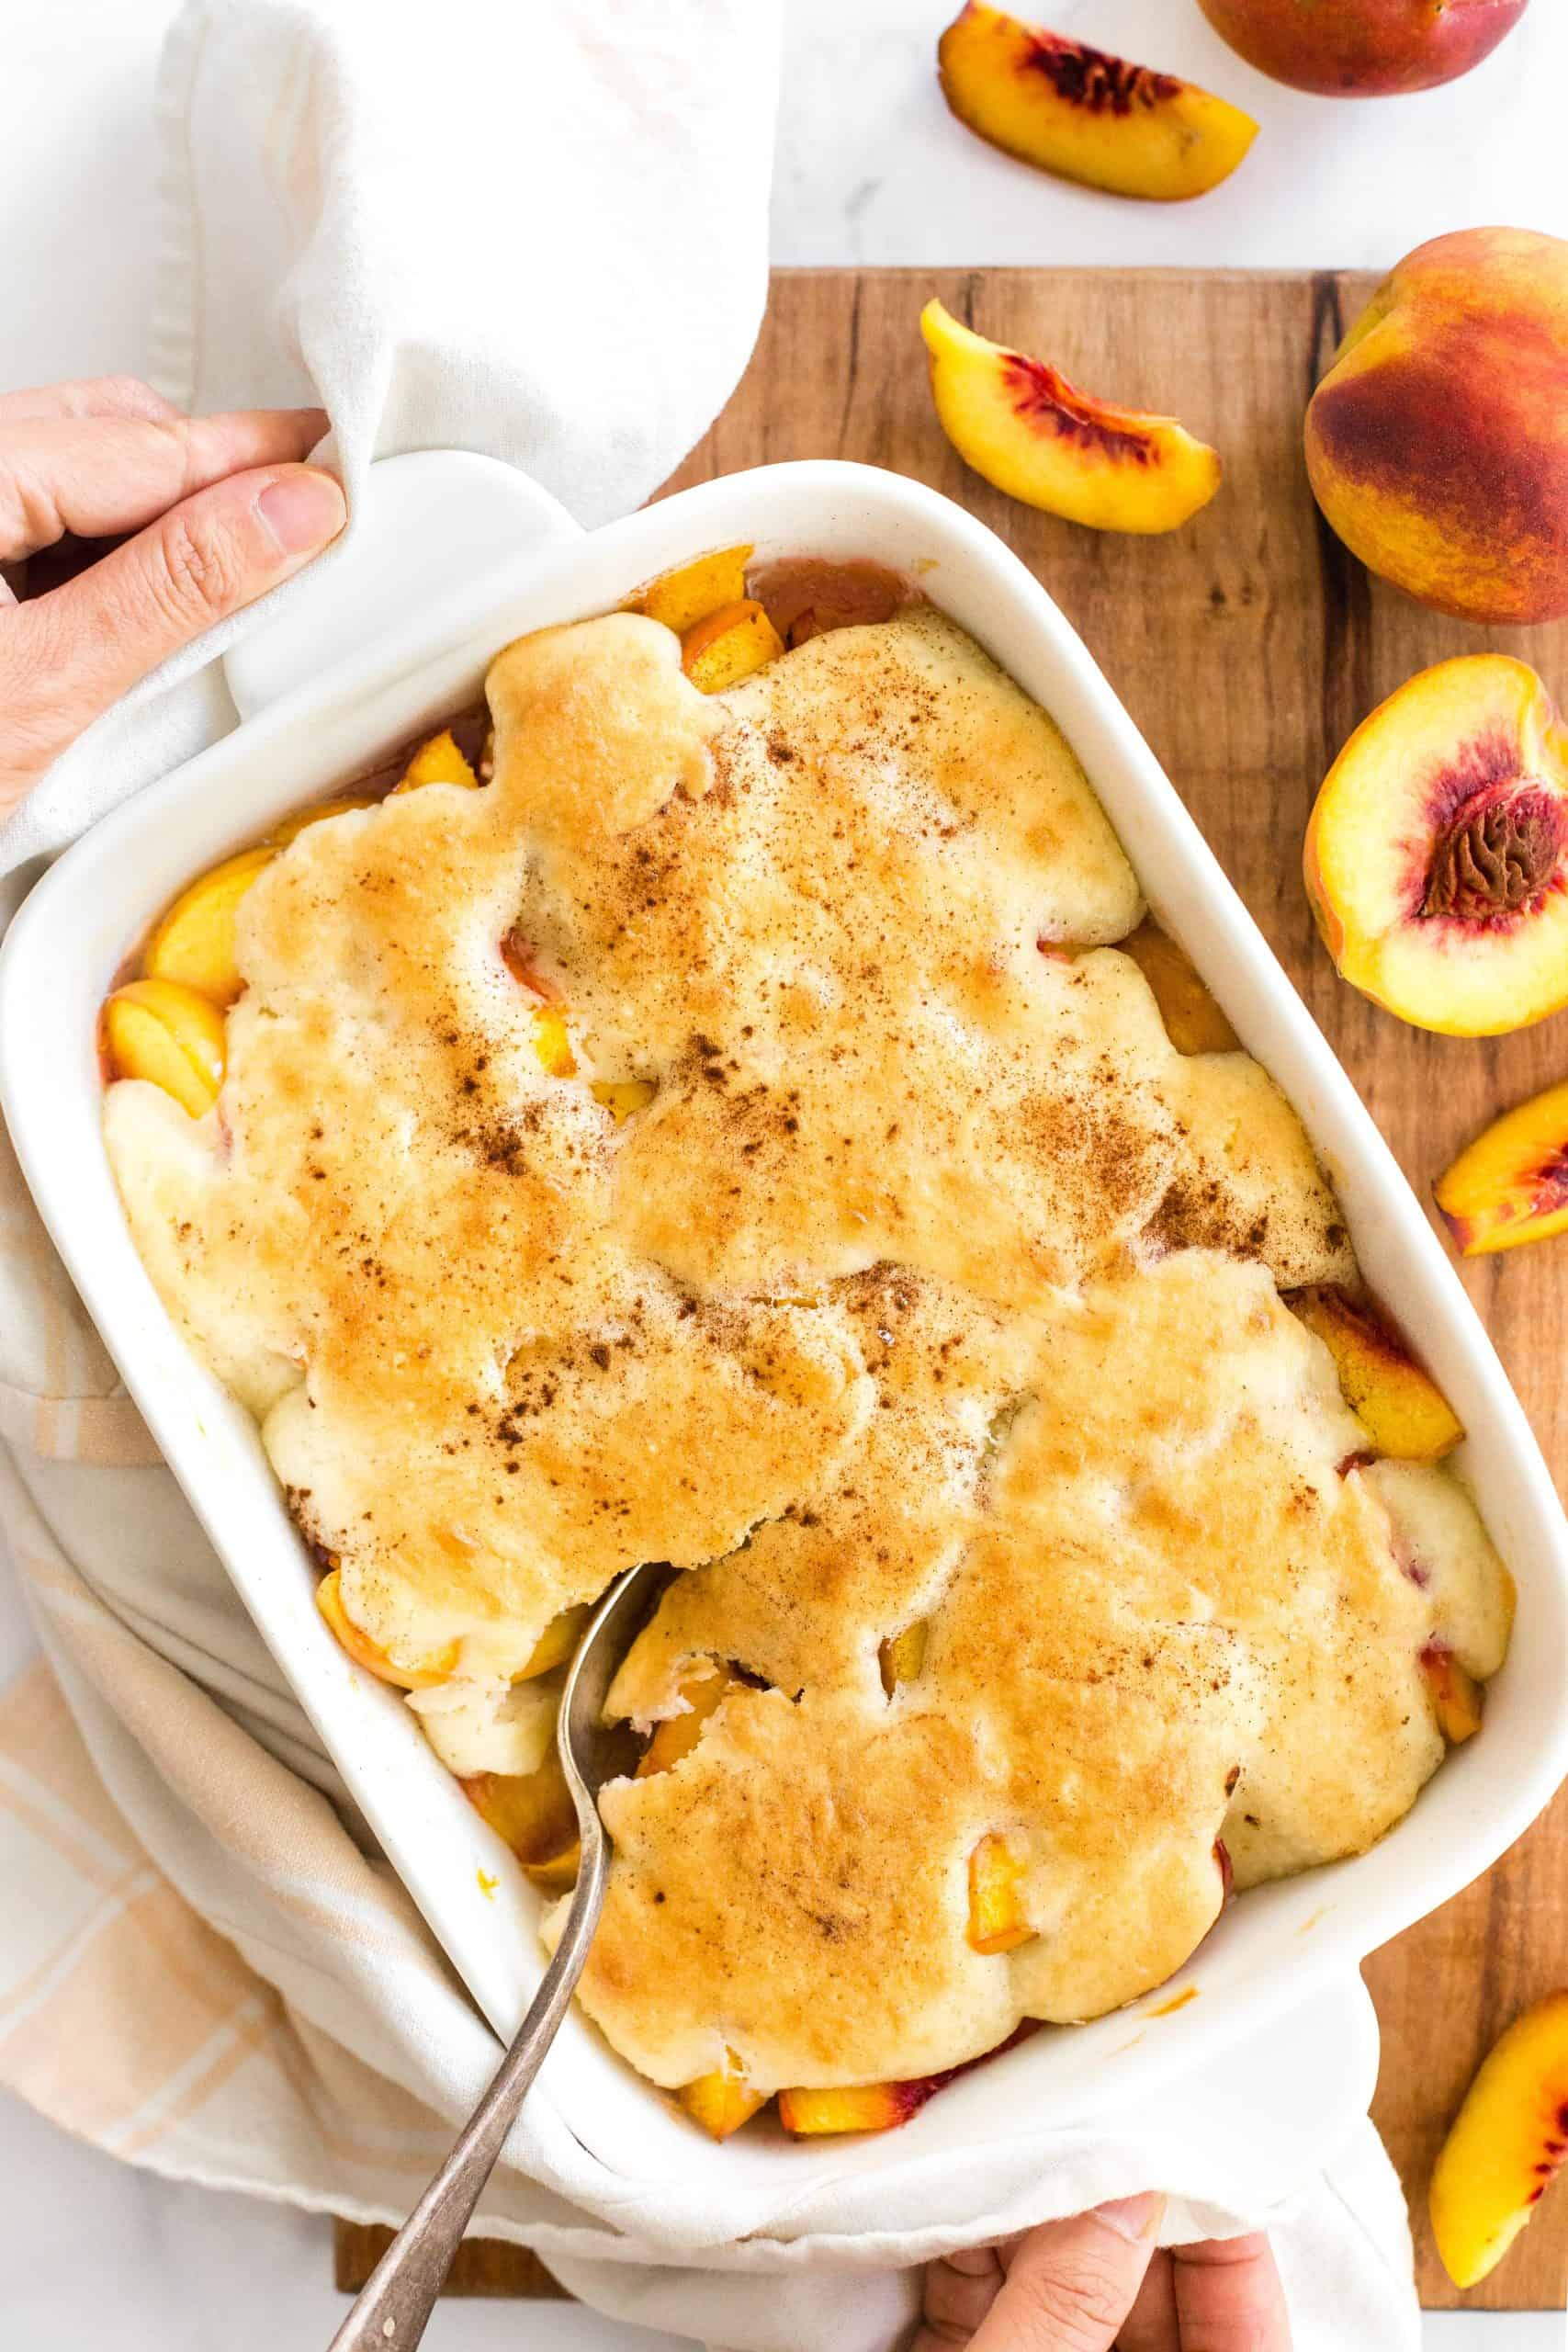 Two hands reaching for a cobbler-filled baking dish.